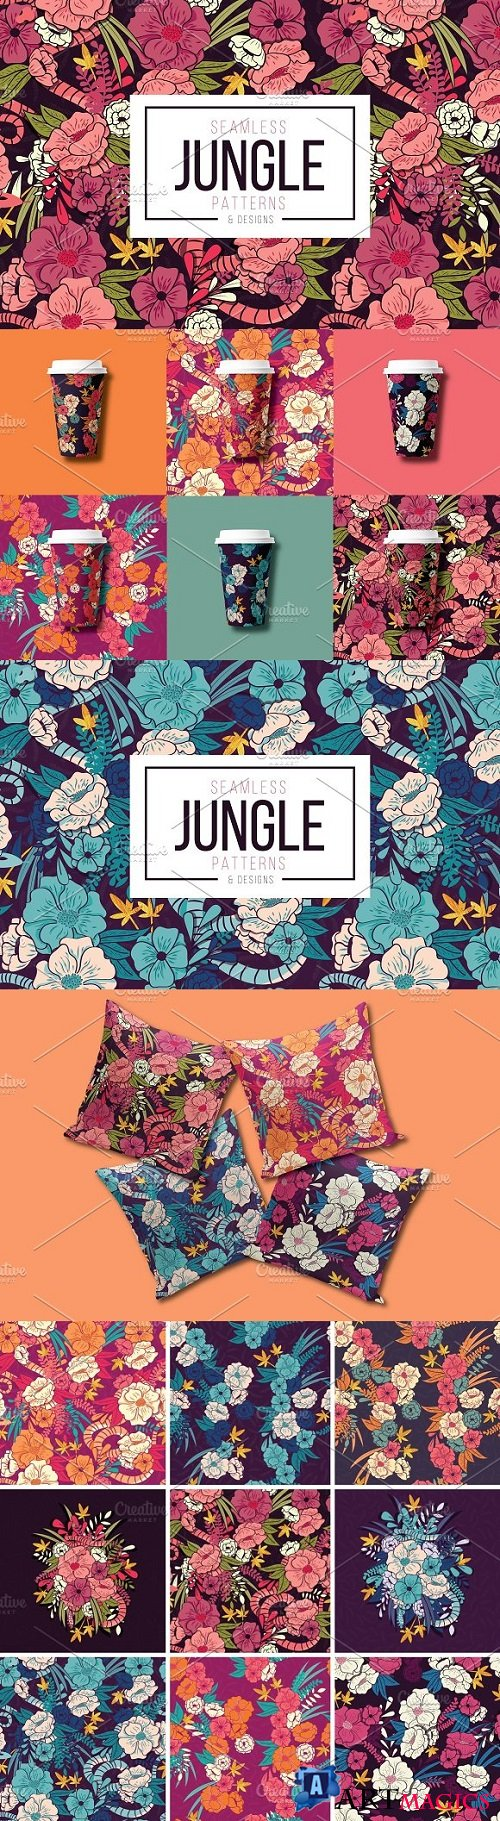 Jungle Floral Patterns & Designs 2231762